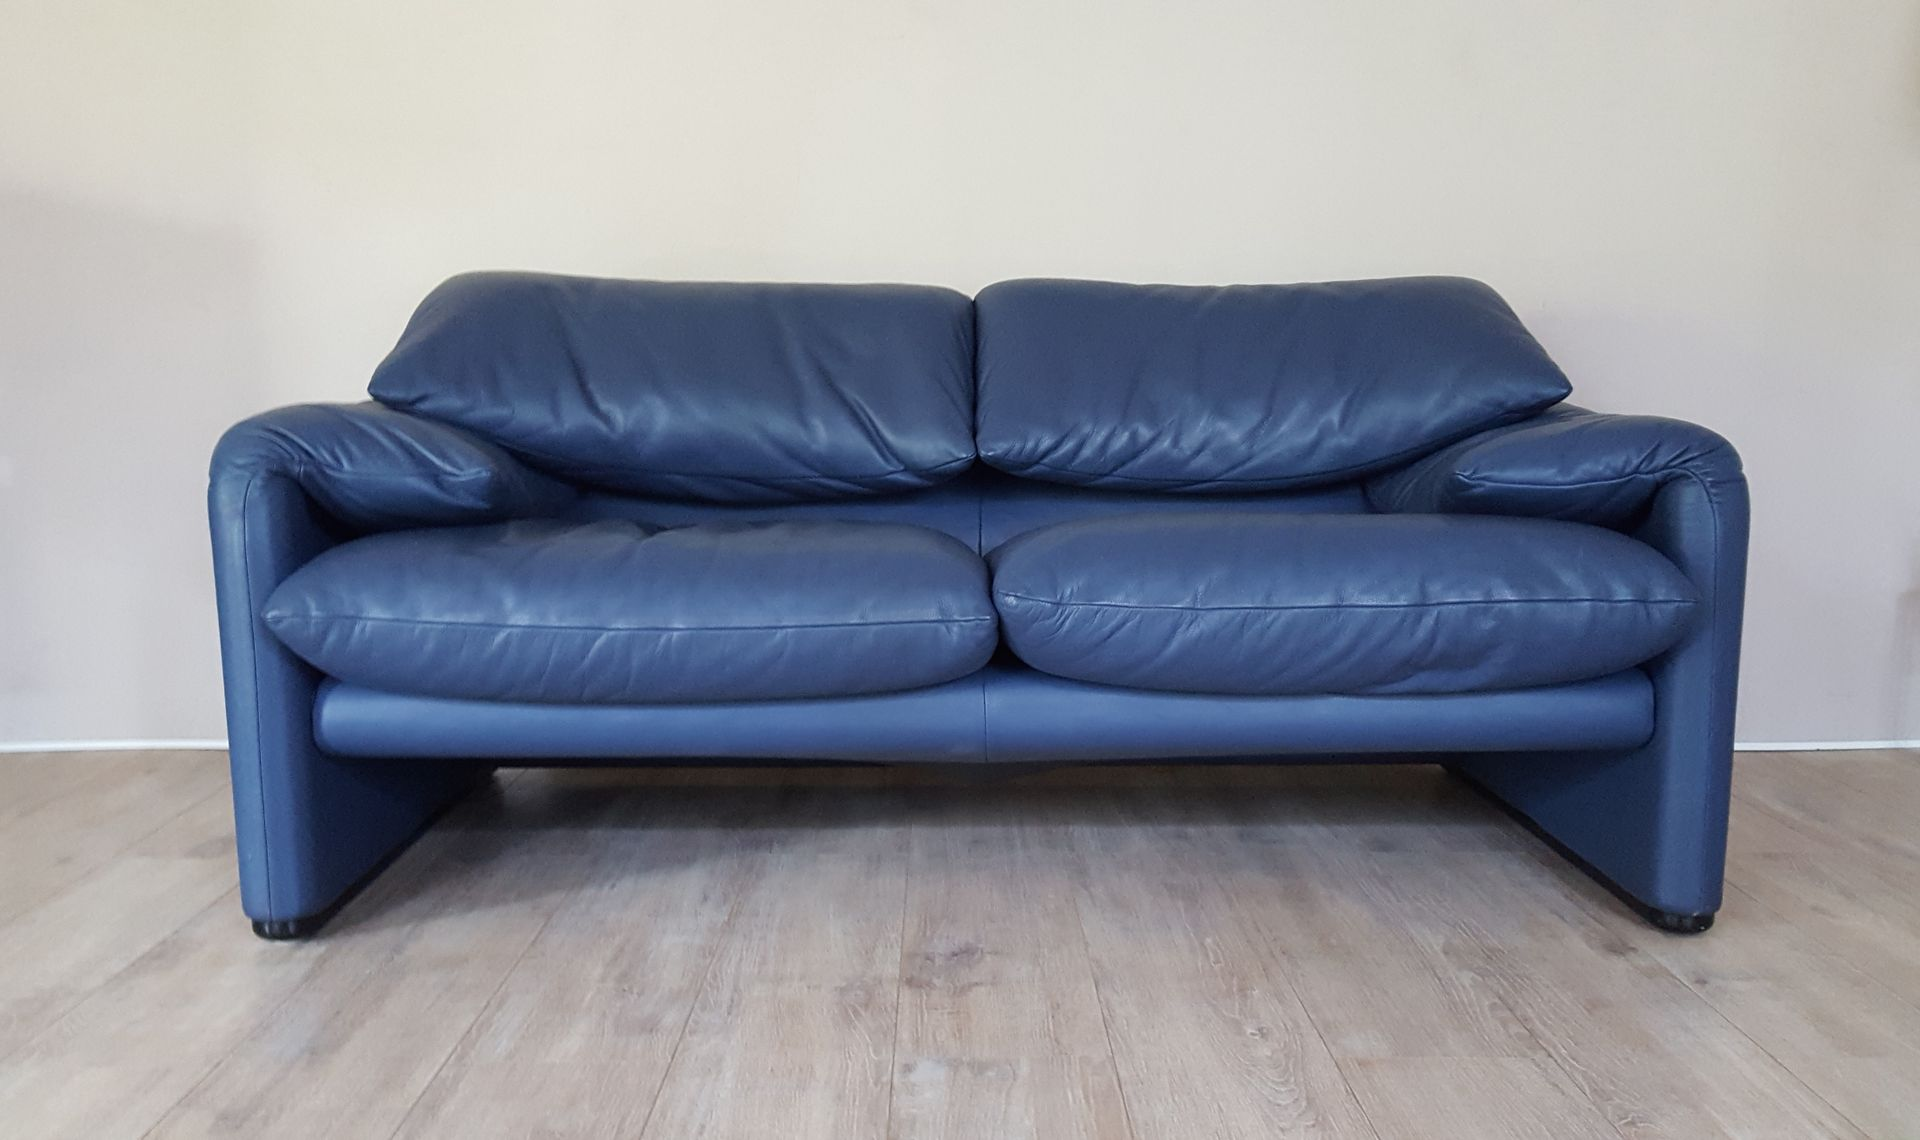 Maralunga 2 seater sofa in blue leather by vico Blue leather sofa